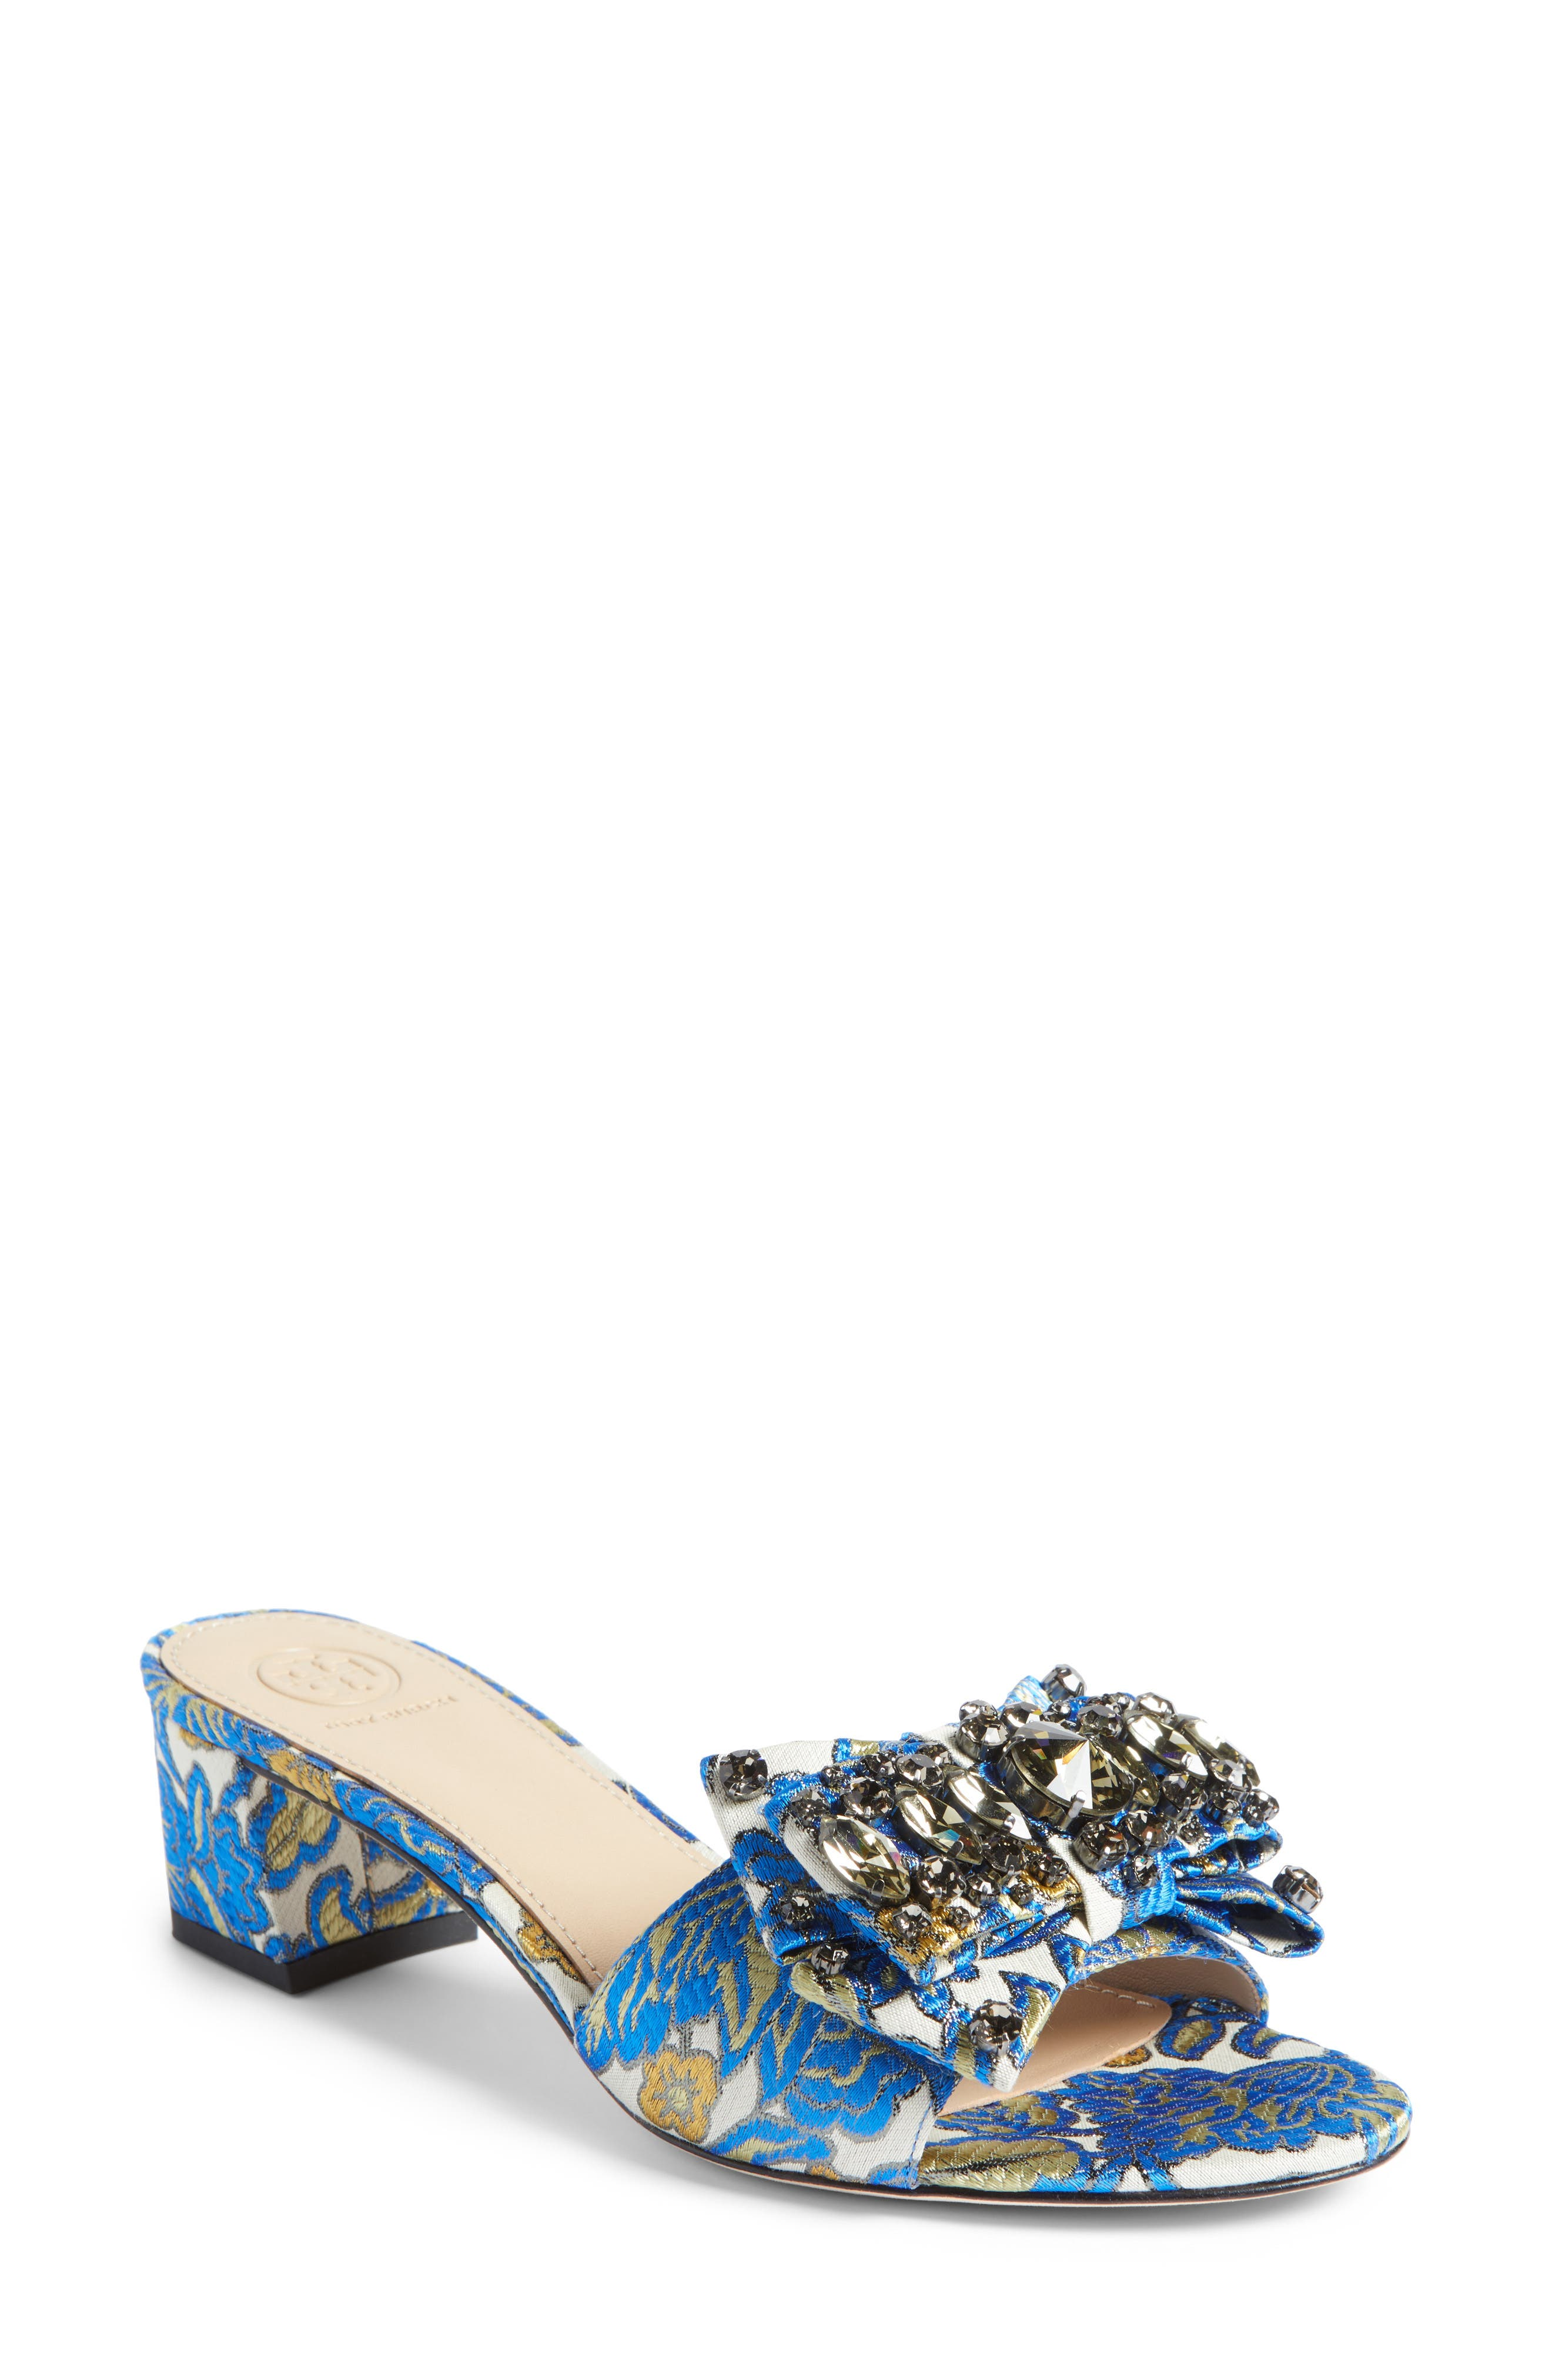 Tory Burch Valentina Embellished Bow Slide Sandal (Women)